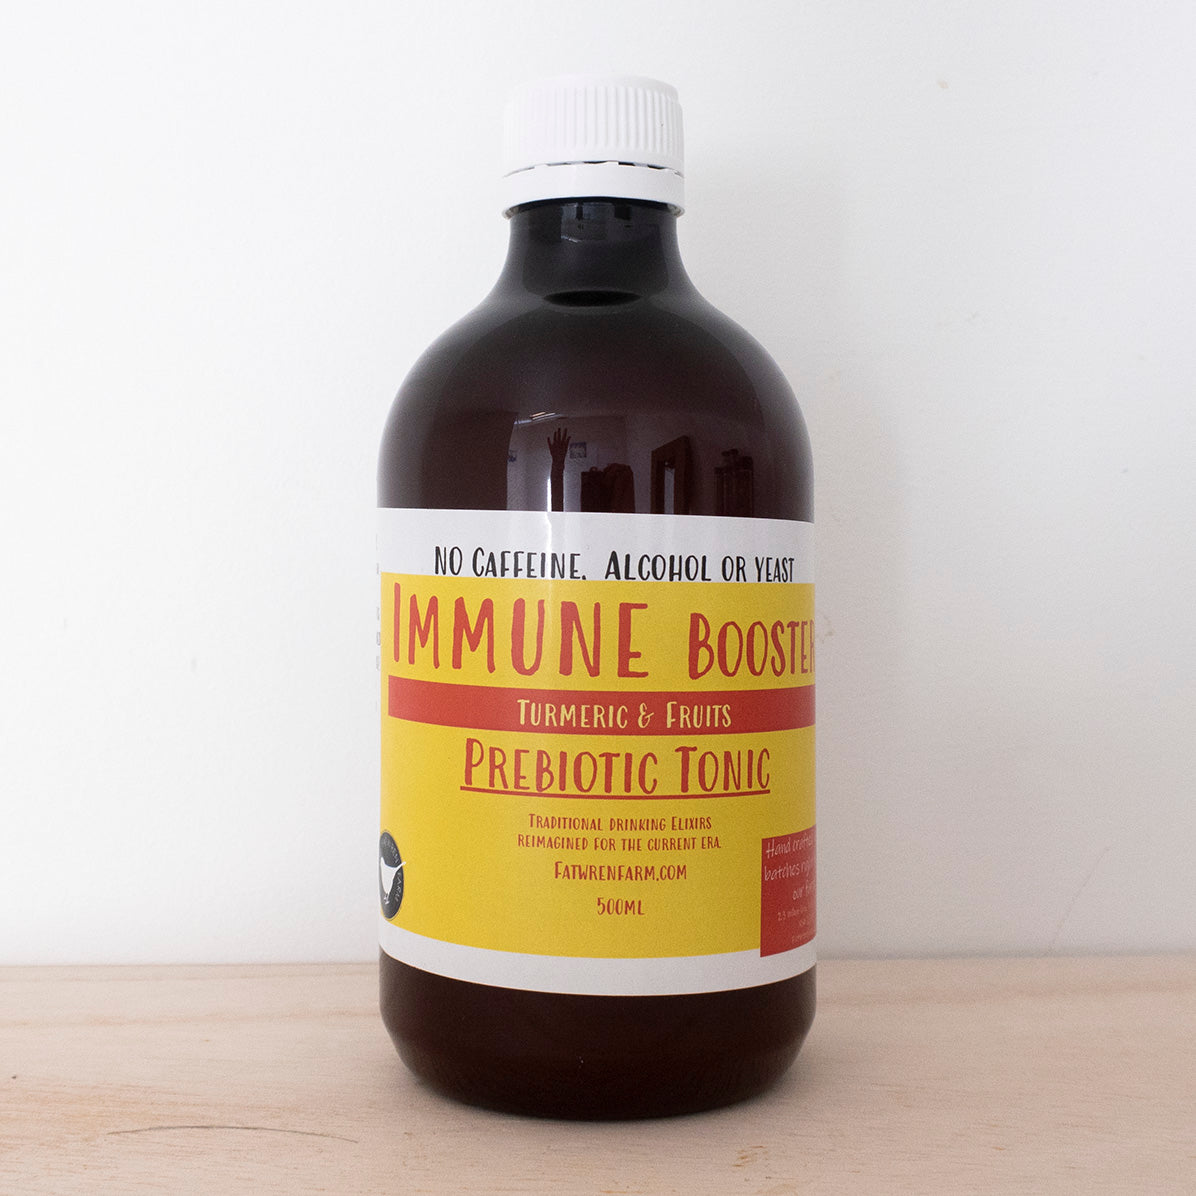 The Immune Booster Prebiotic Tonic